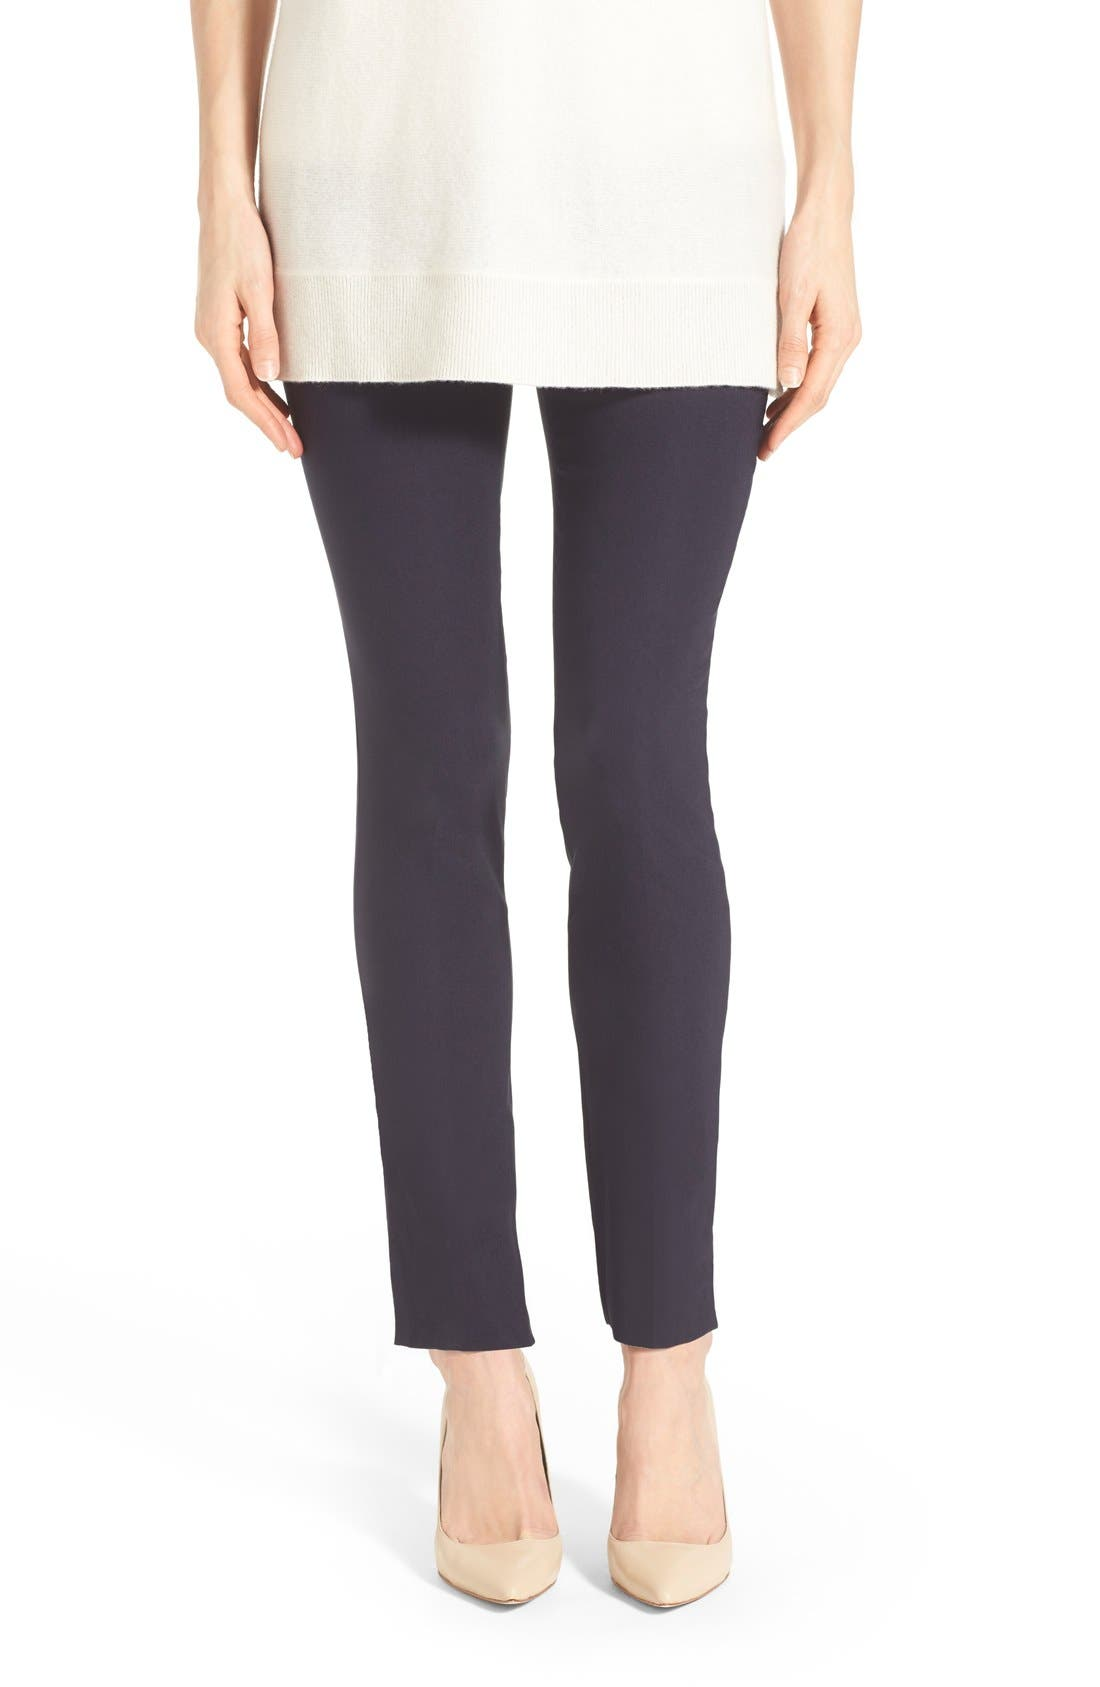 Petite Women's Nic+Zoe Wonderstretch Slim Leg Pants